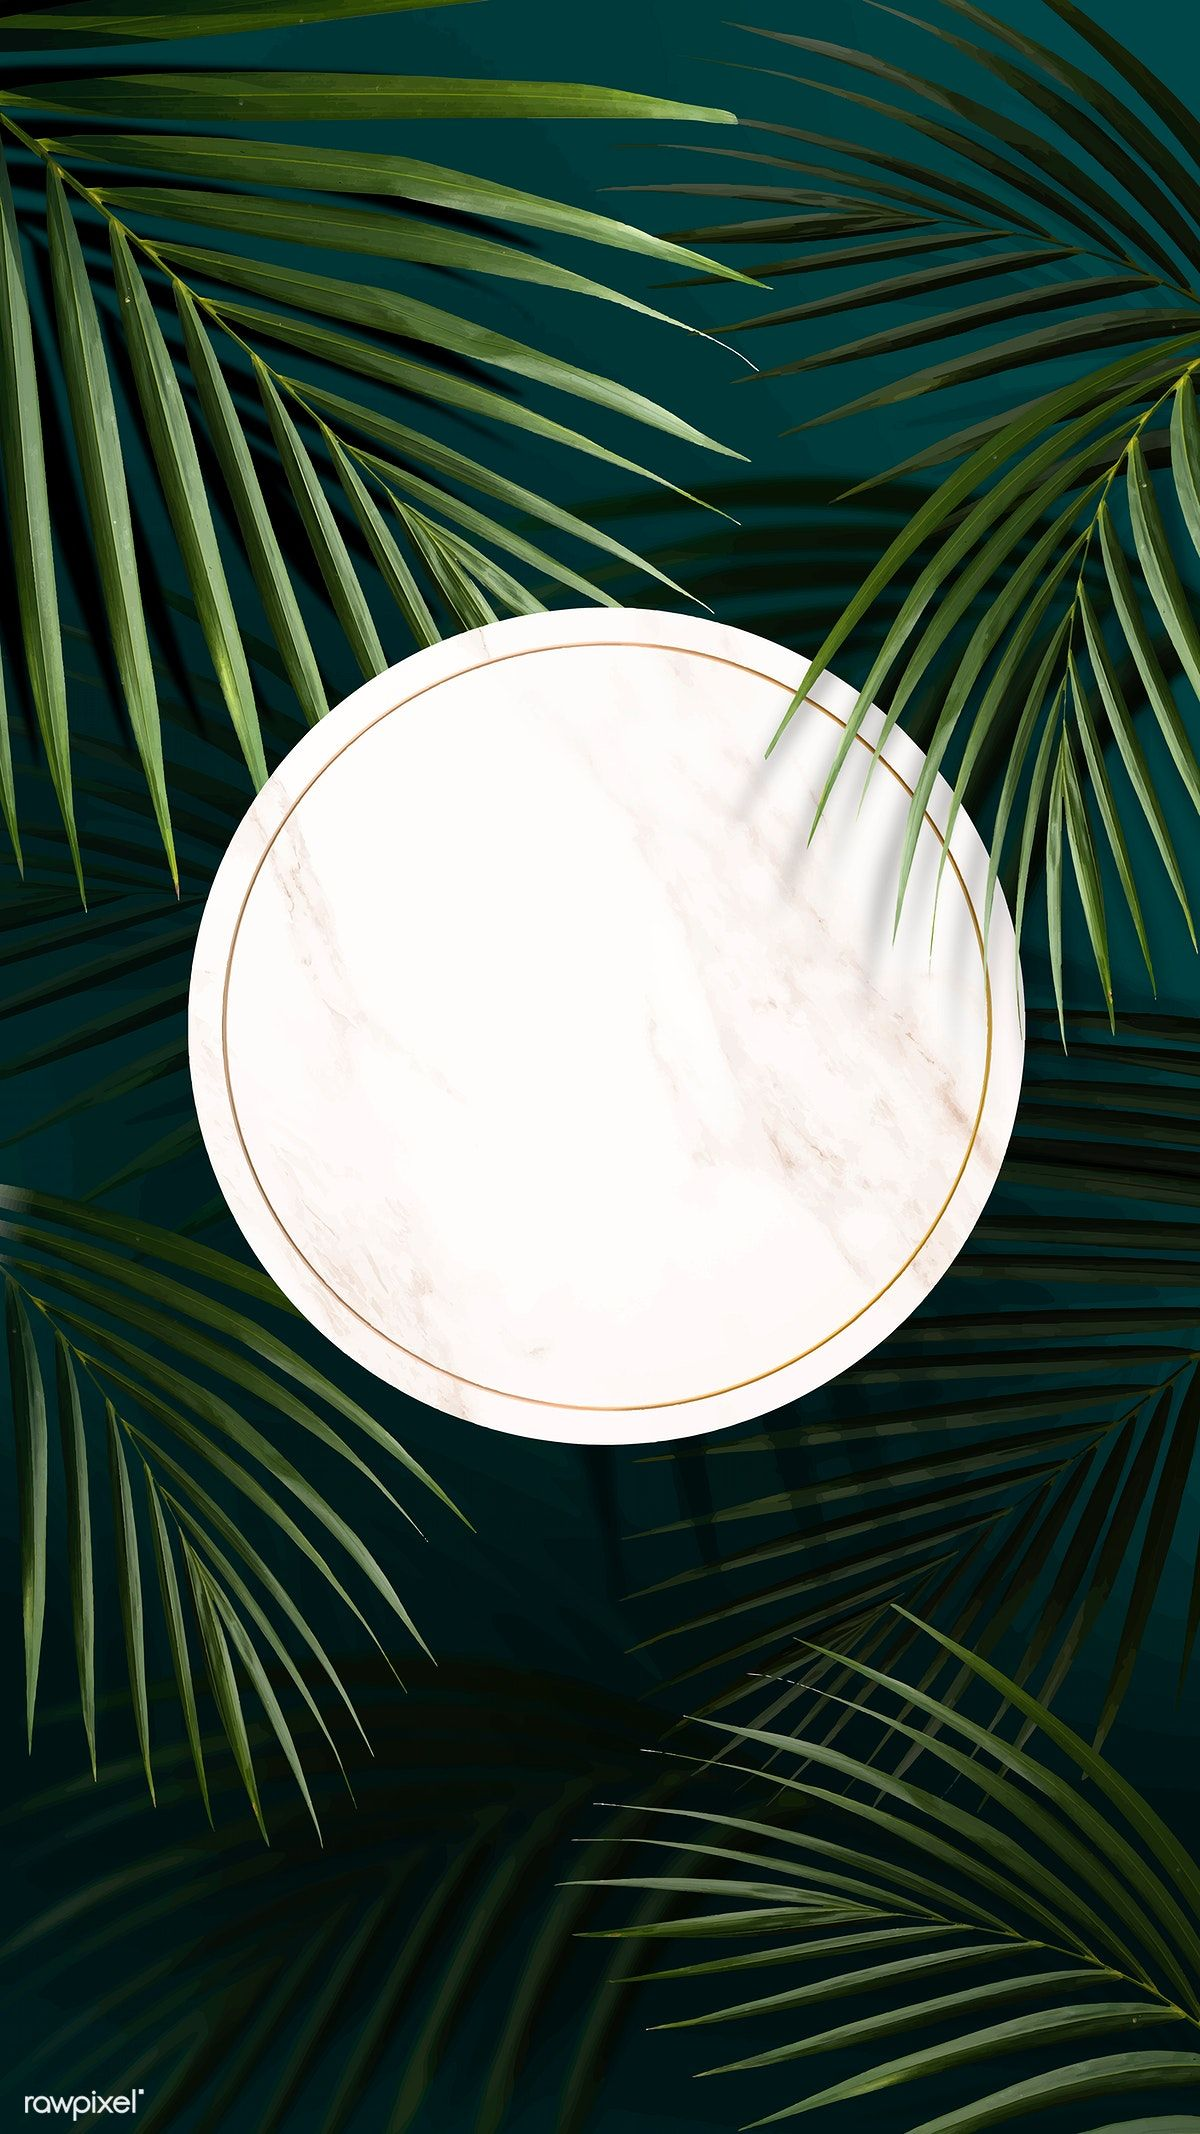 Download premium vector of Round golden frame on a tropical background